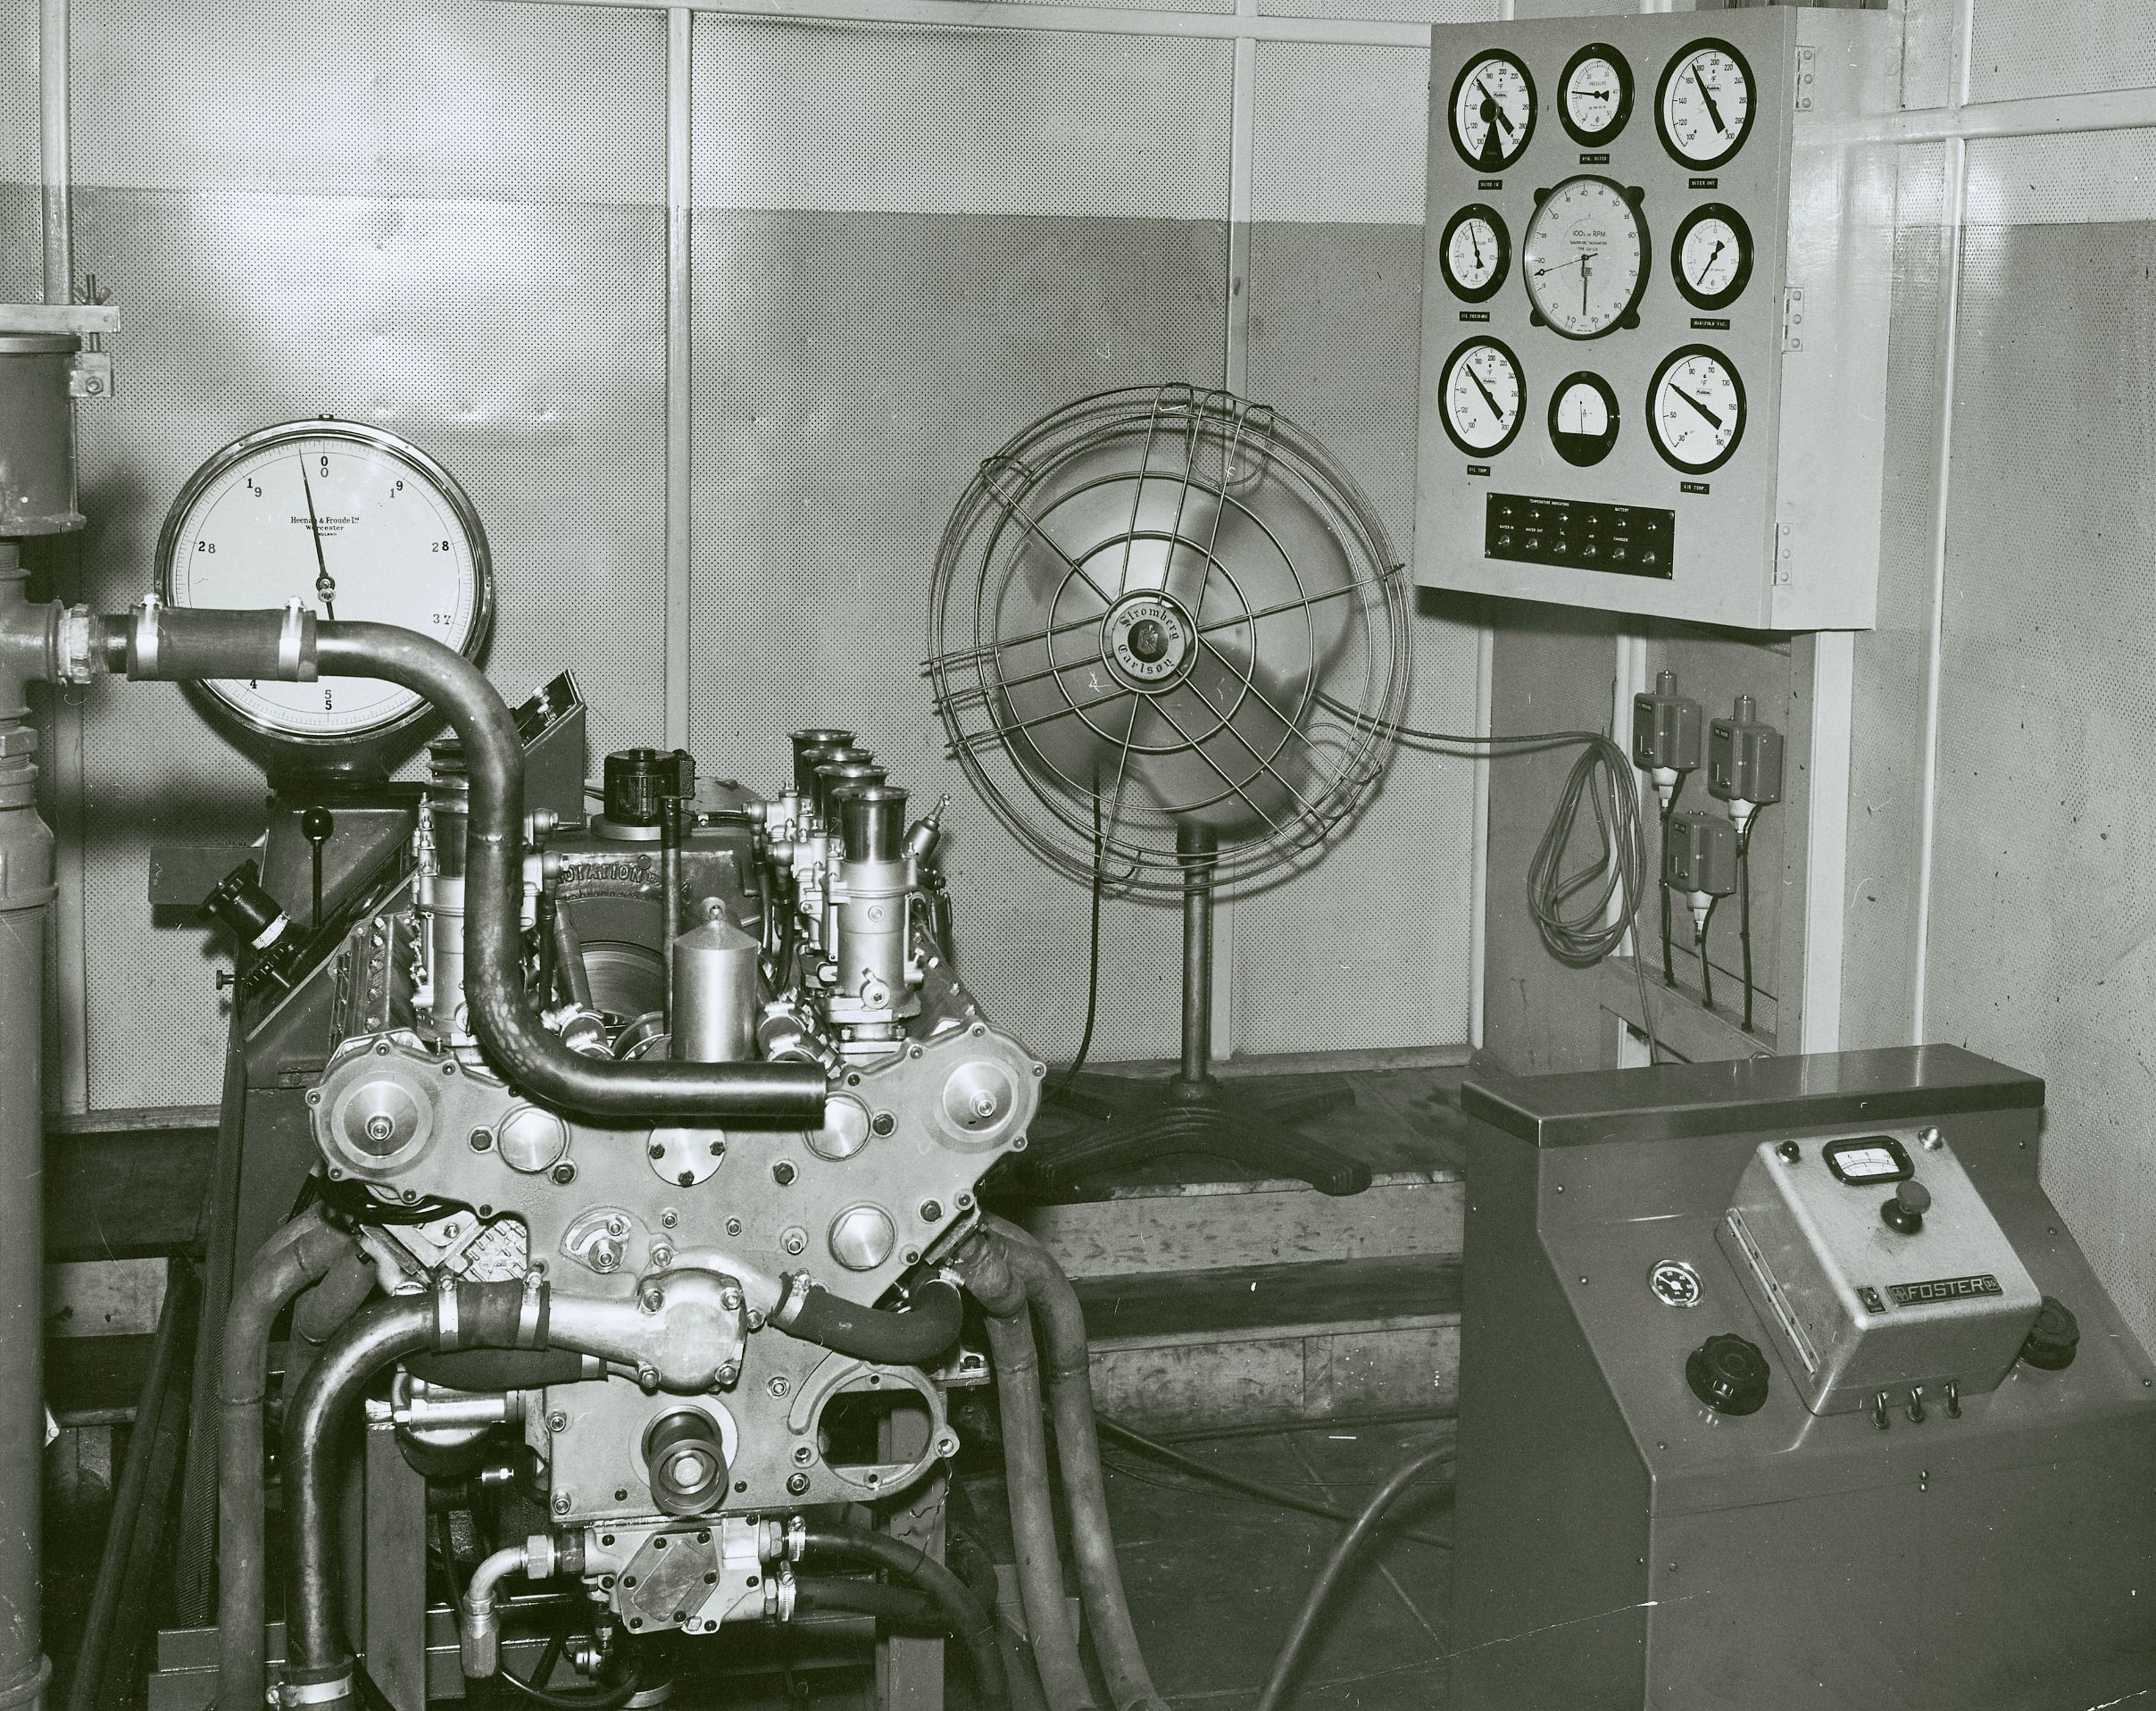 hight resolution of the very first repco rb620 v8 in the richmond test cell in 1965 weber carbs on this engine only repco